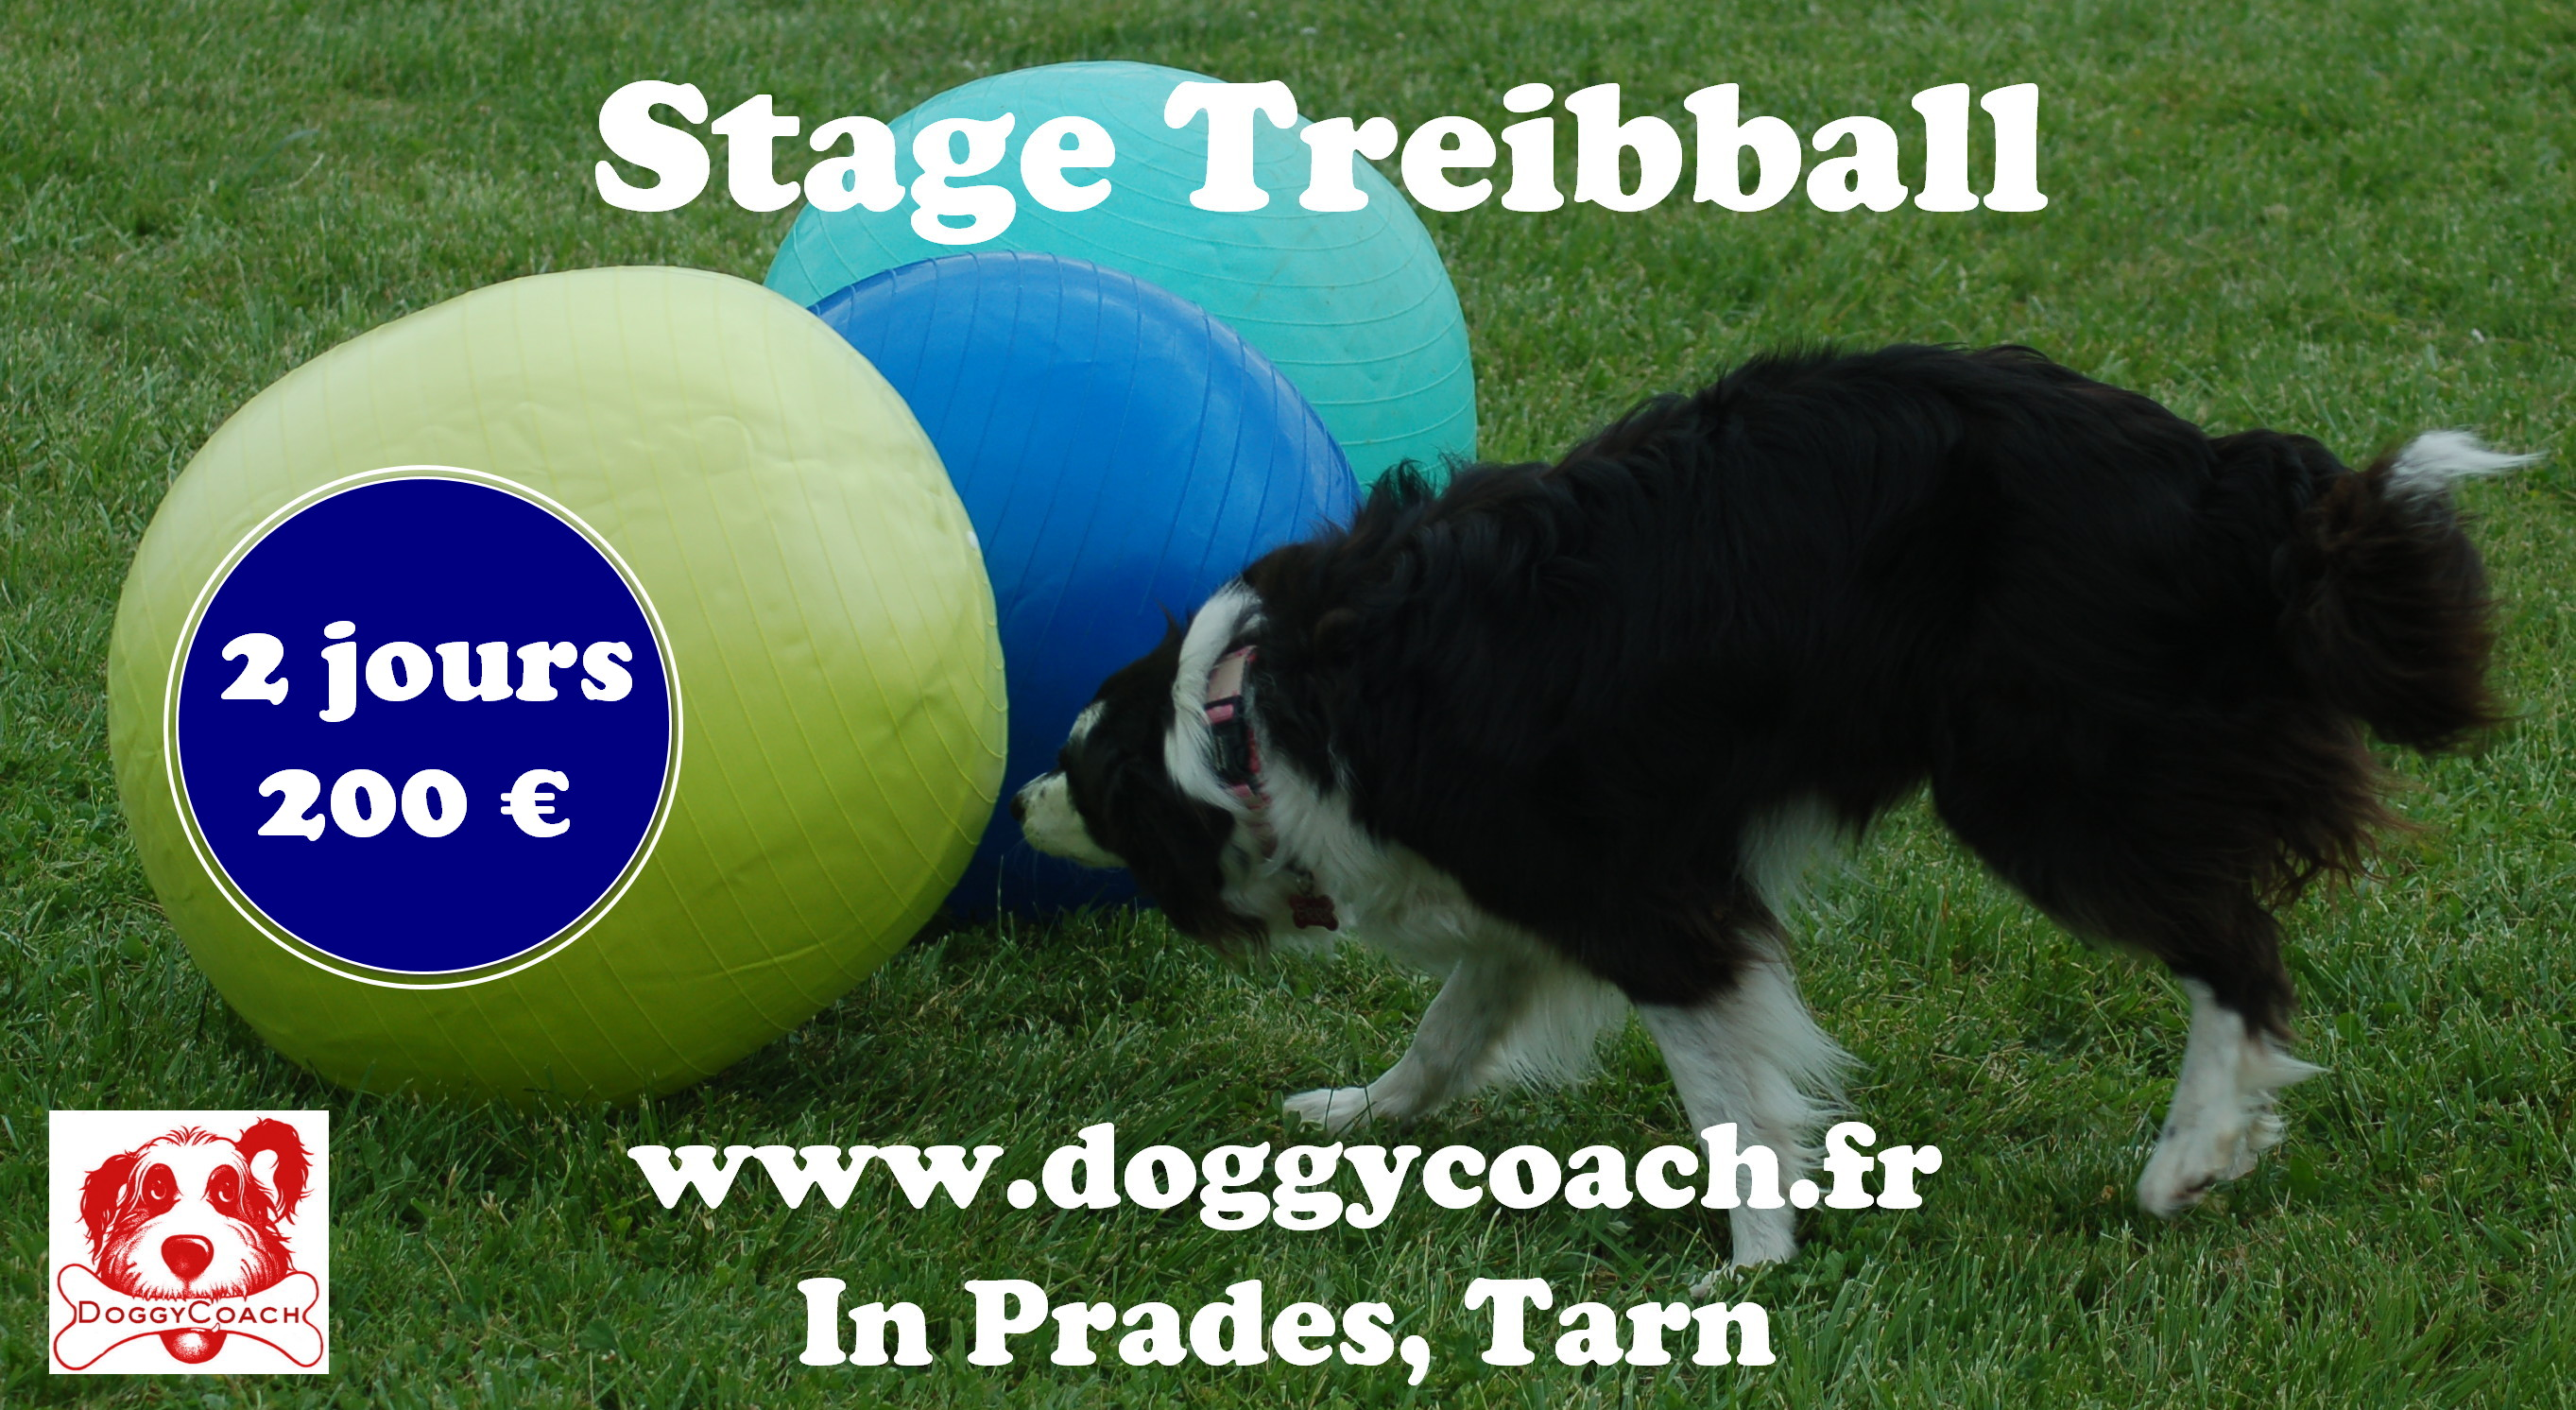 Les stages Treibball